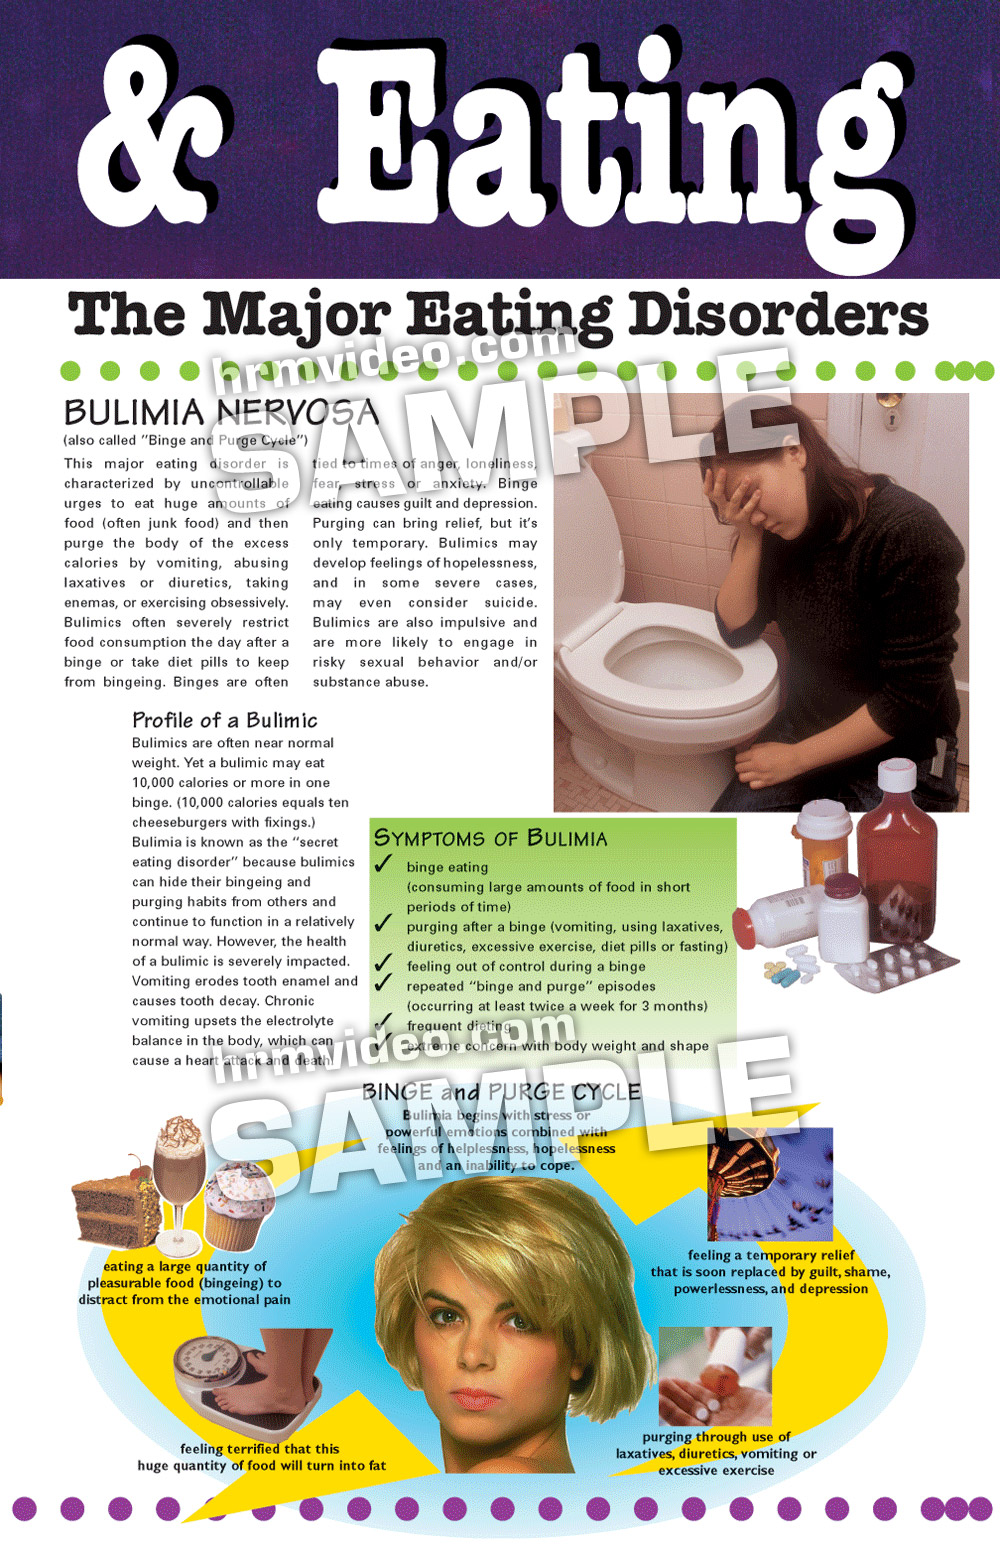 media and eating disorders 2018-7-20 douglaston, ny-based project heal will work to address local eating disorders with its recent expansion into the milwaukee area.